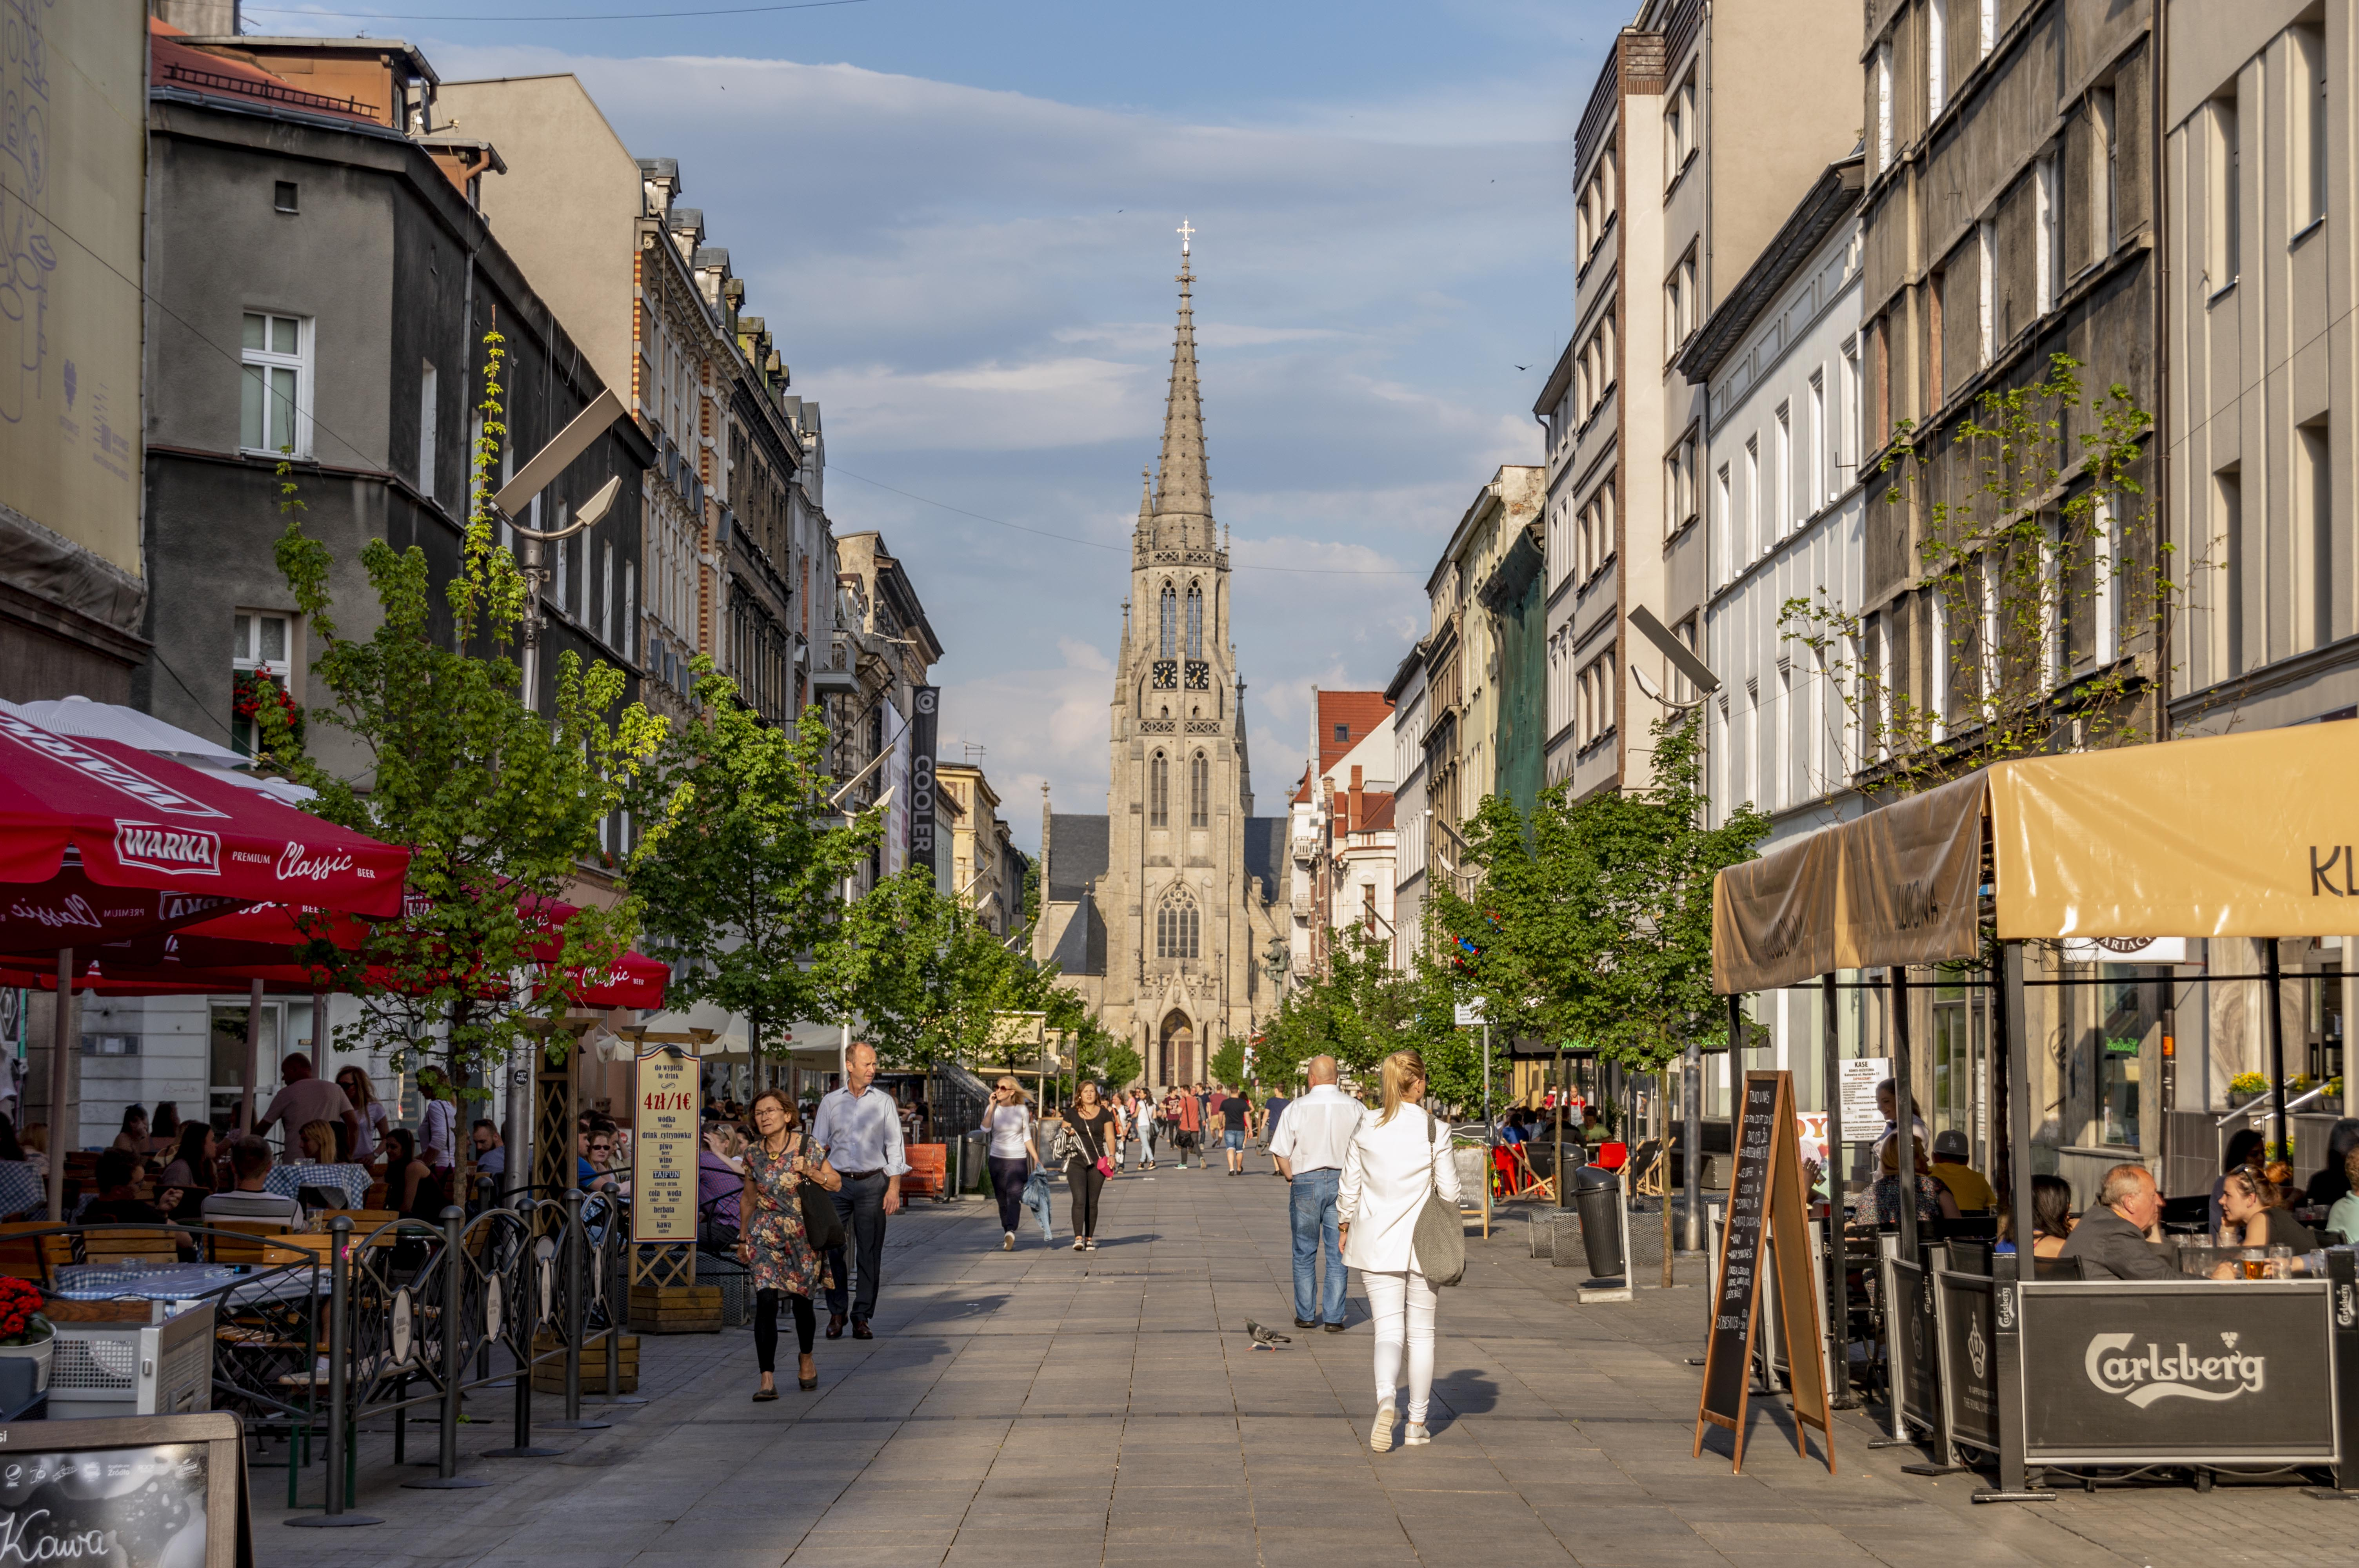 things to do in Katowice - mariacka